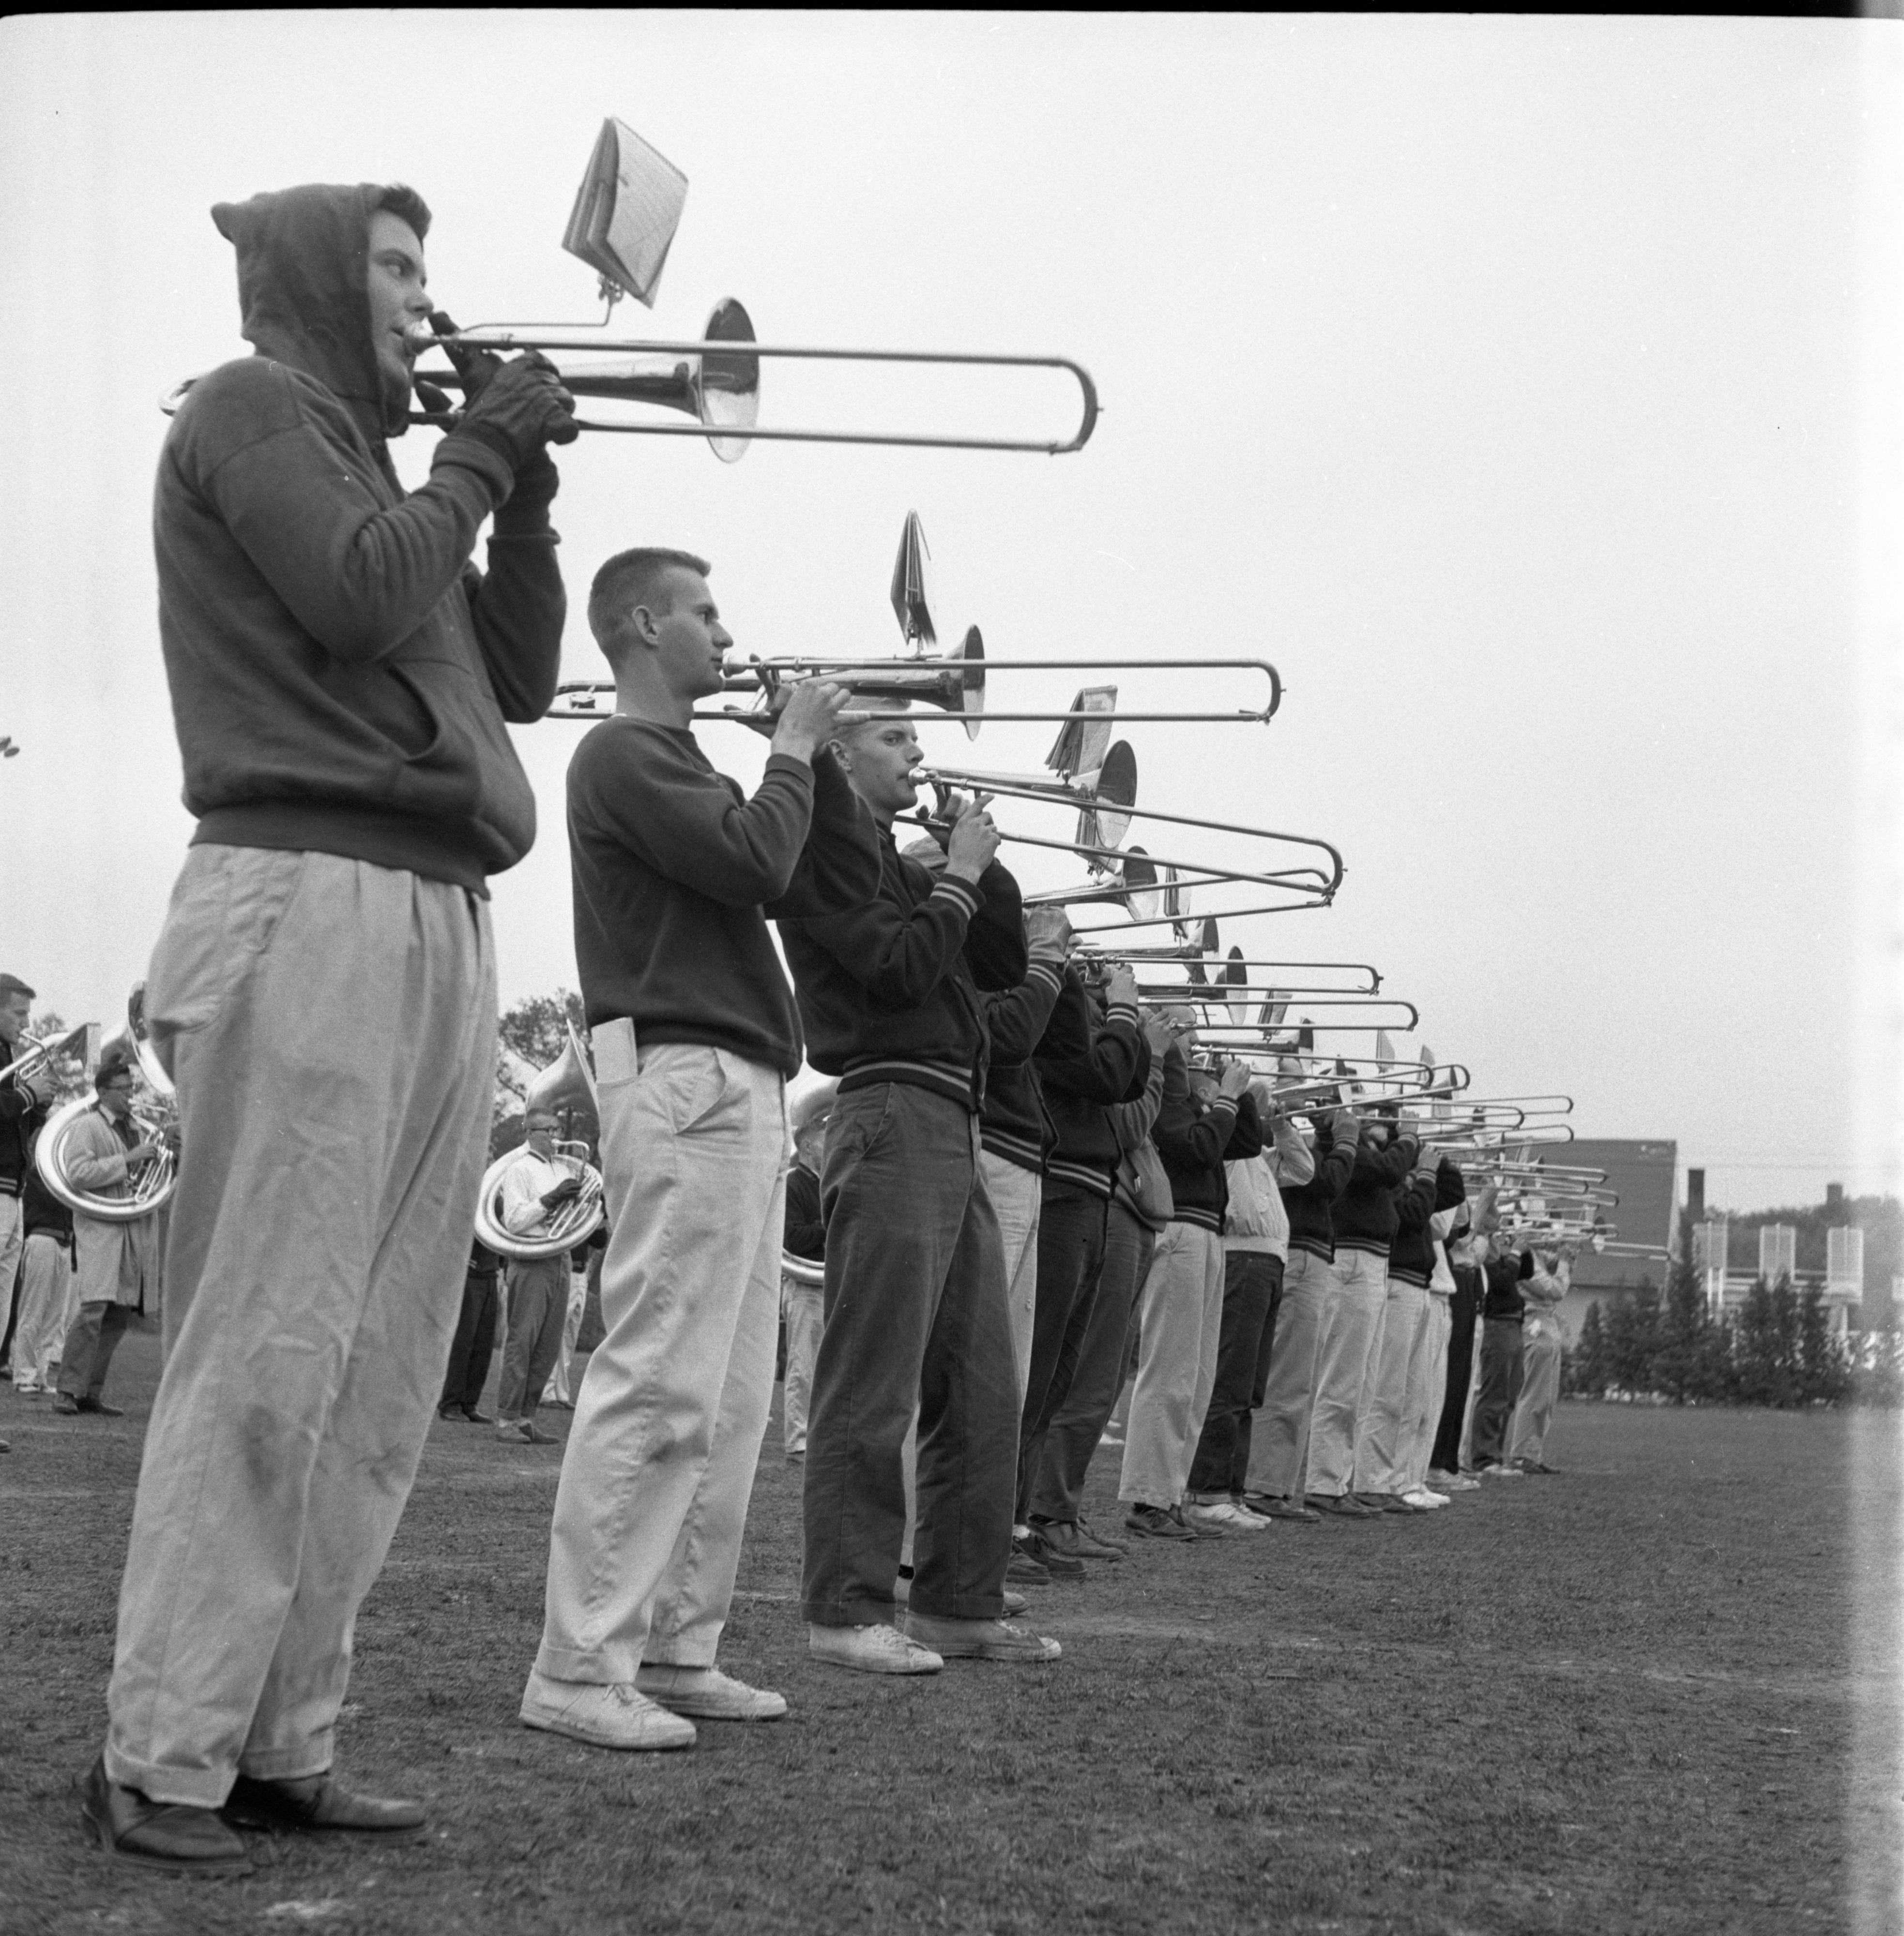 Trombone Players Line Up At University of Michigan Marching Band Practice, October 1959 image